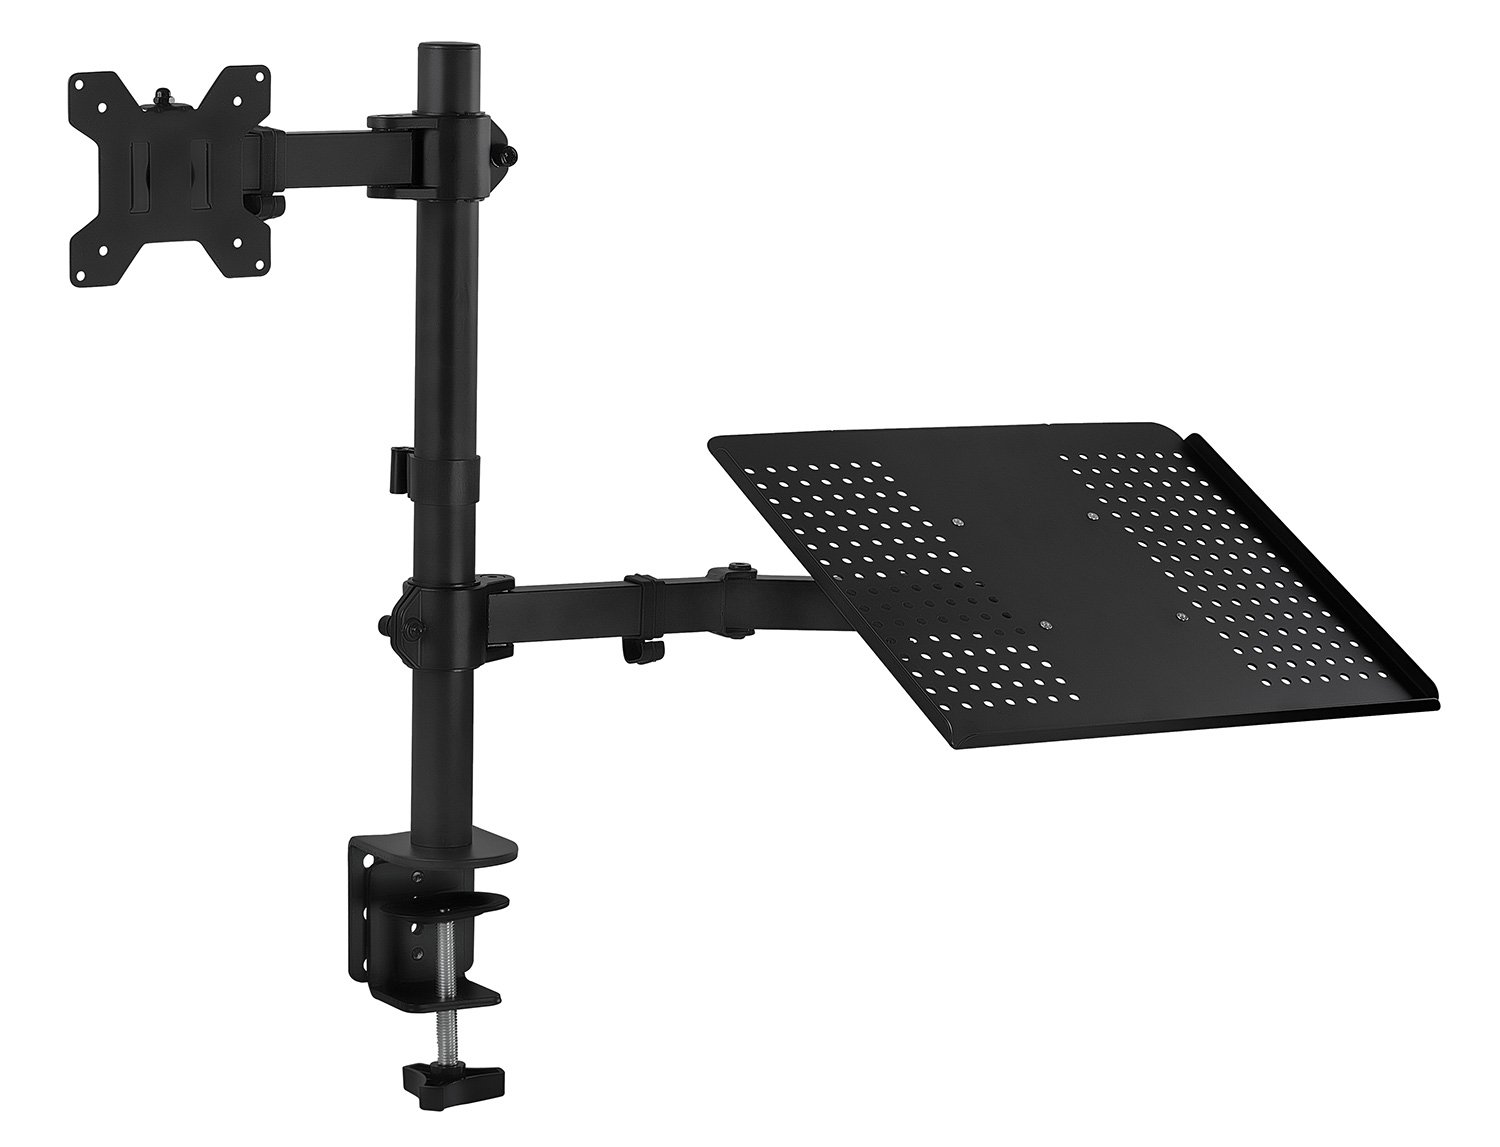 Black 1 Gibson Holders DCWB Adjustable Wire Display Easel 5.5 W x 8.75 H with 1.5 display ledge